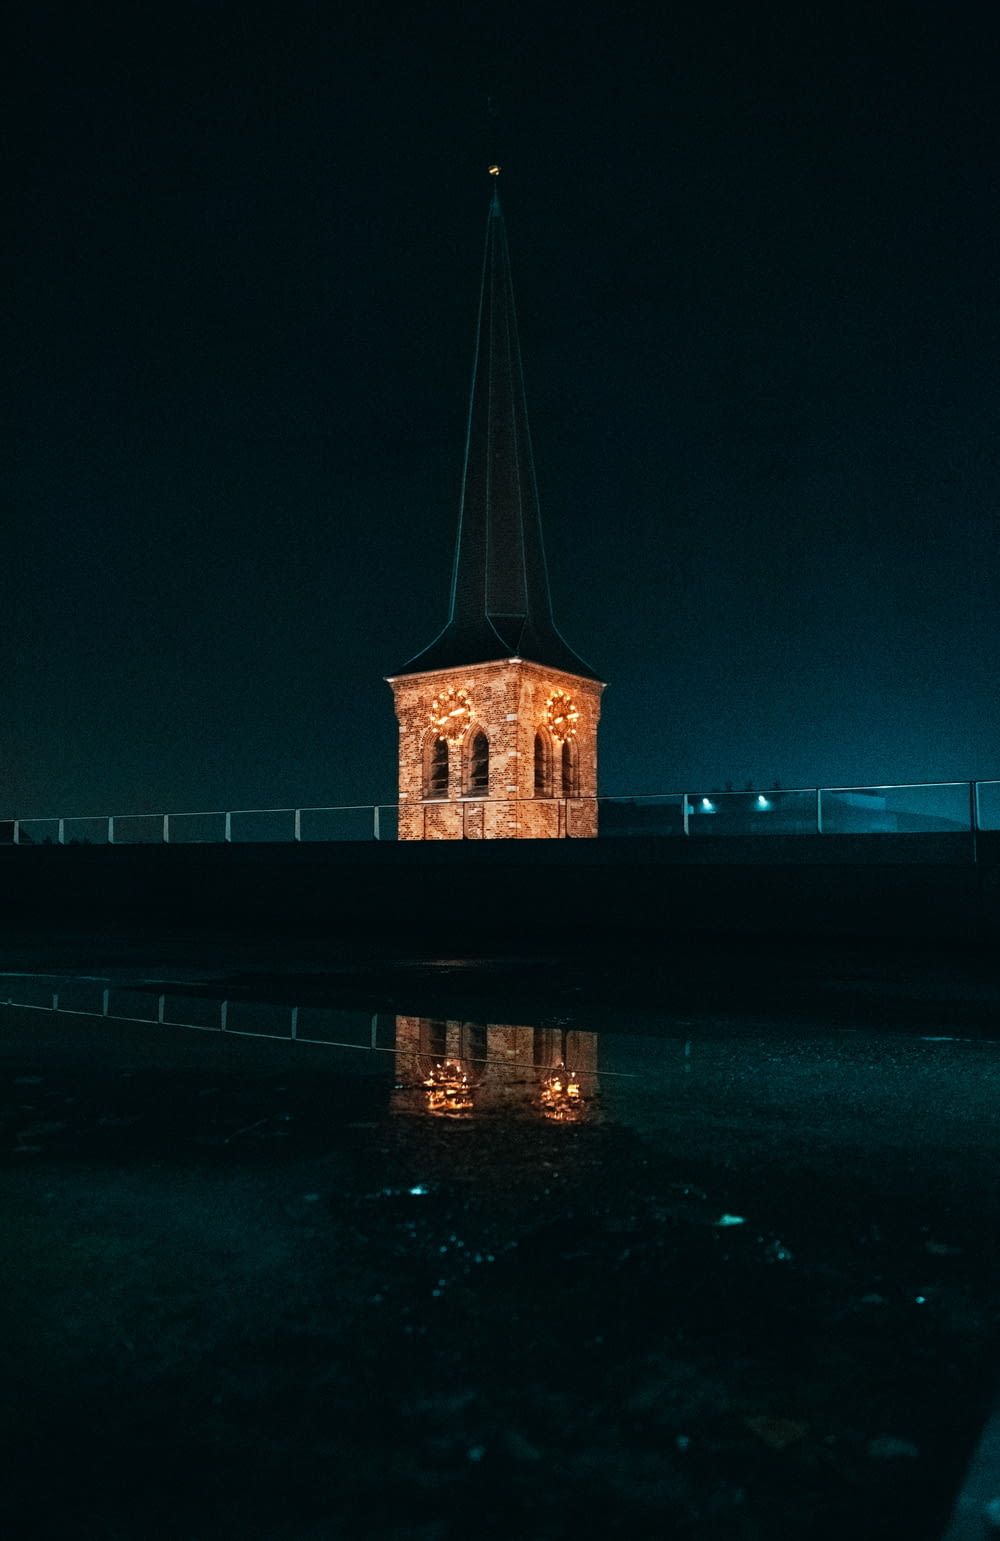 brown concrete building near body of water during night time